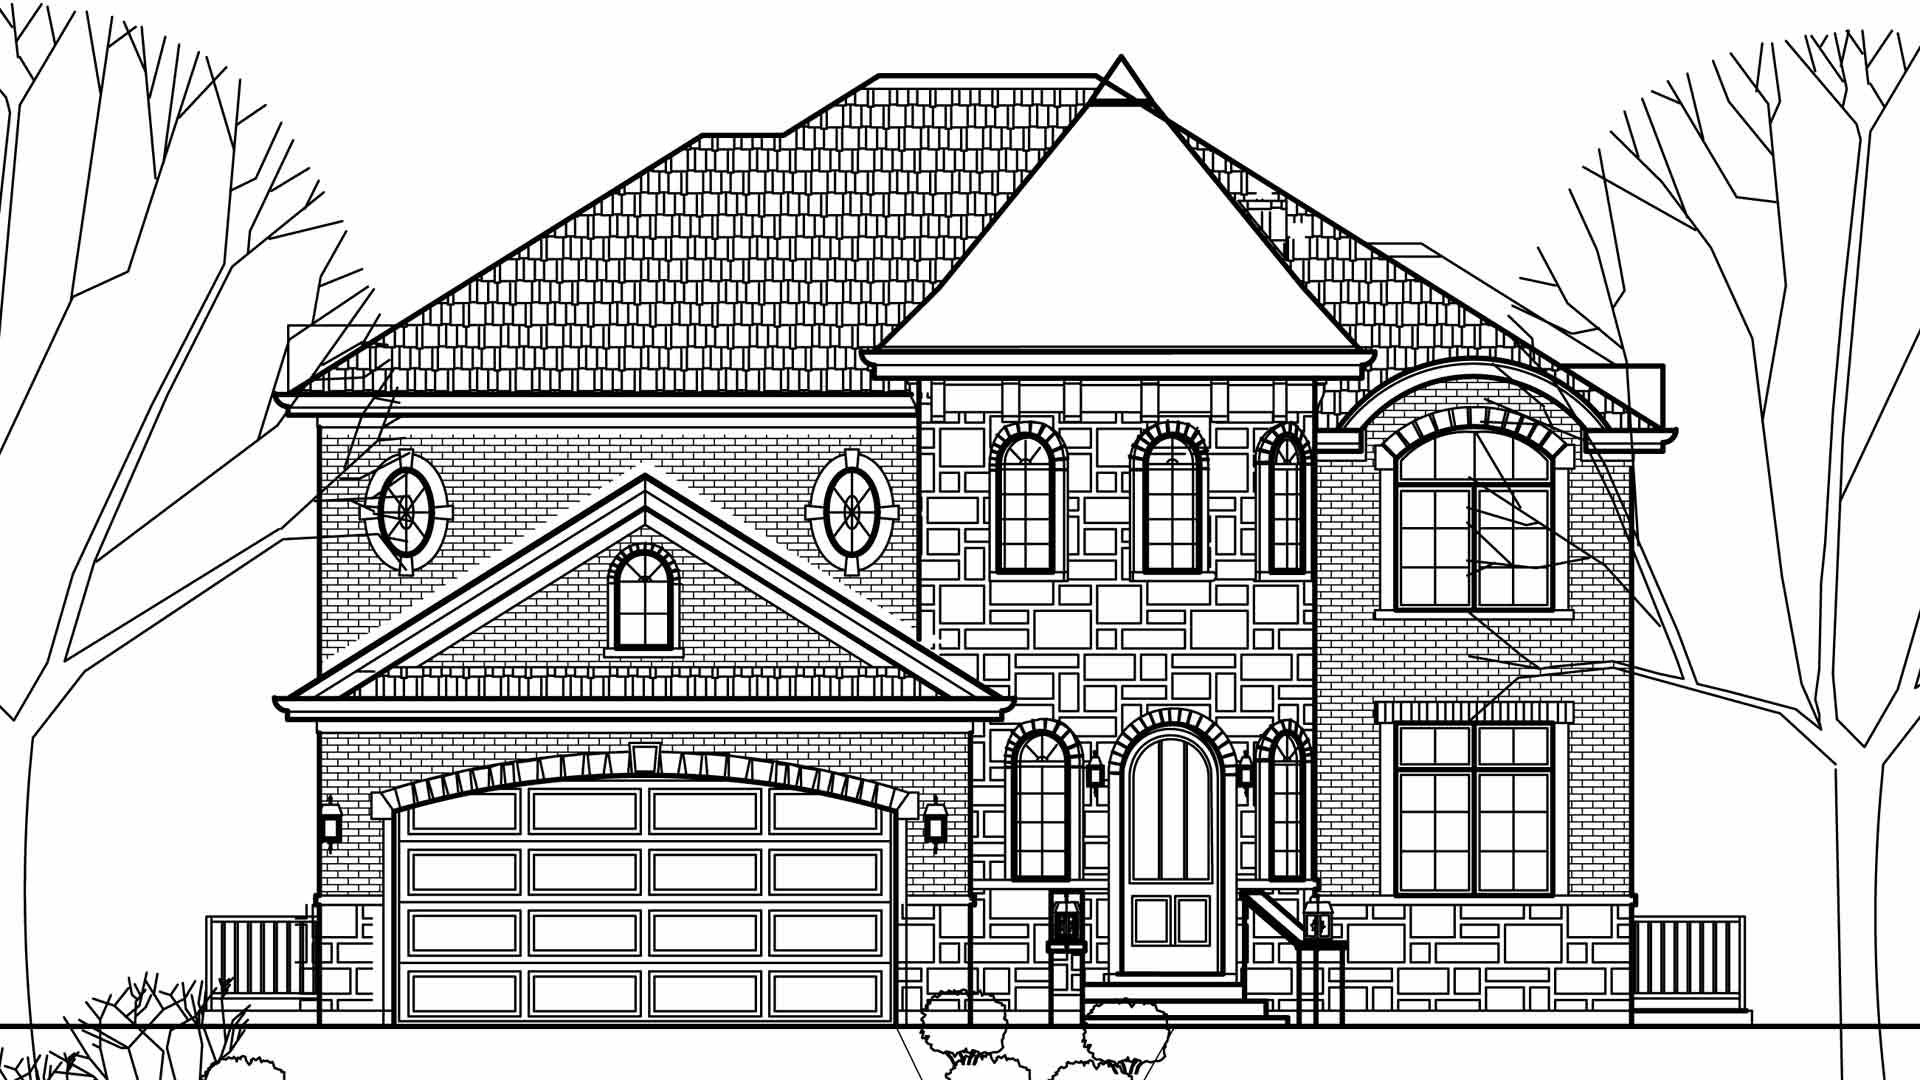 VHT House lower level / additions and new homes in Glenview by Greenleaf Developers